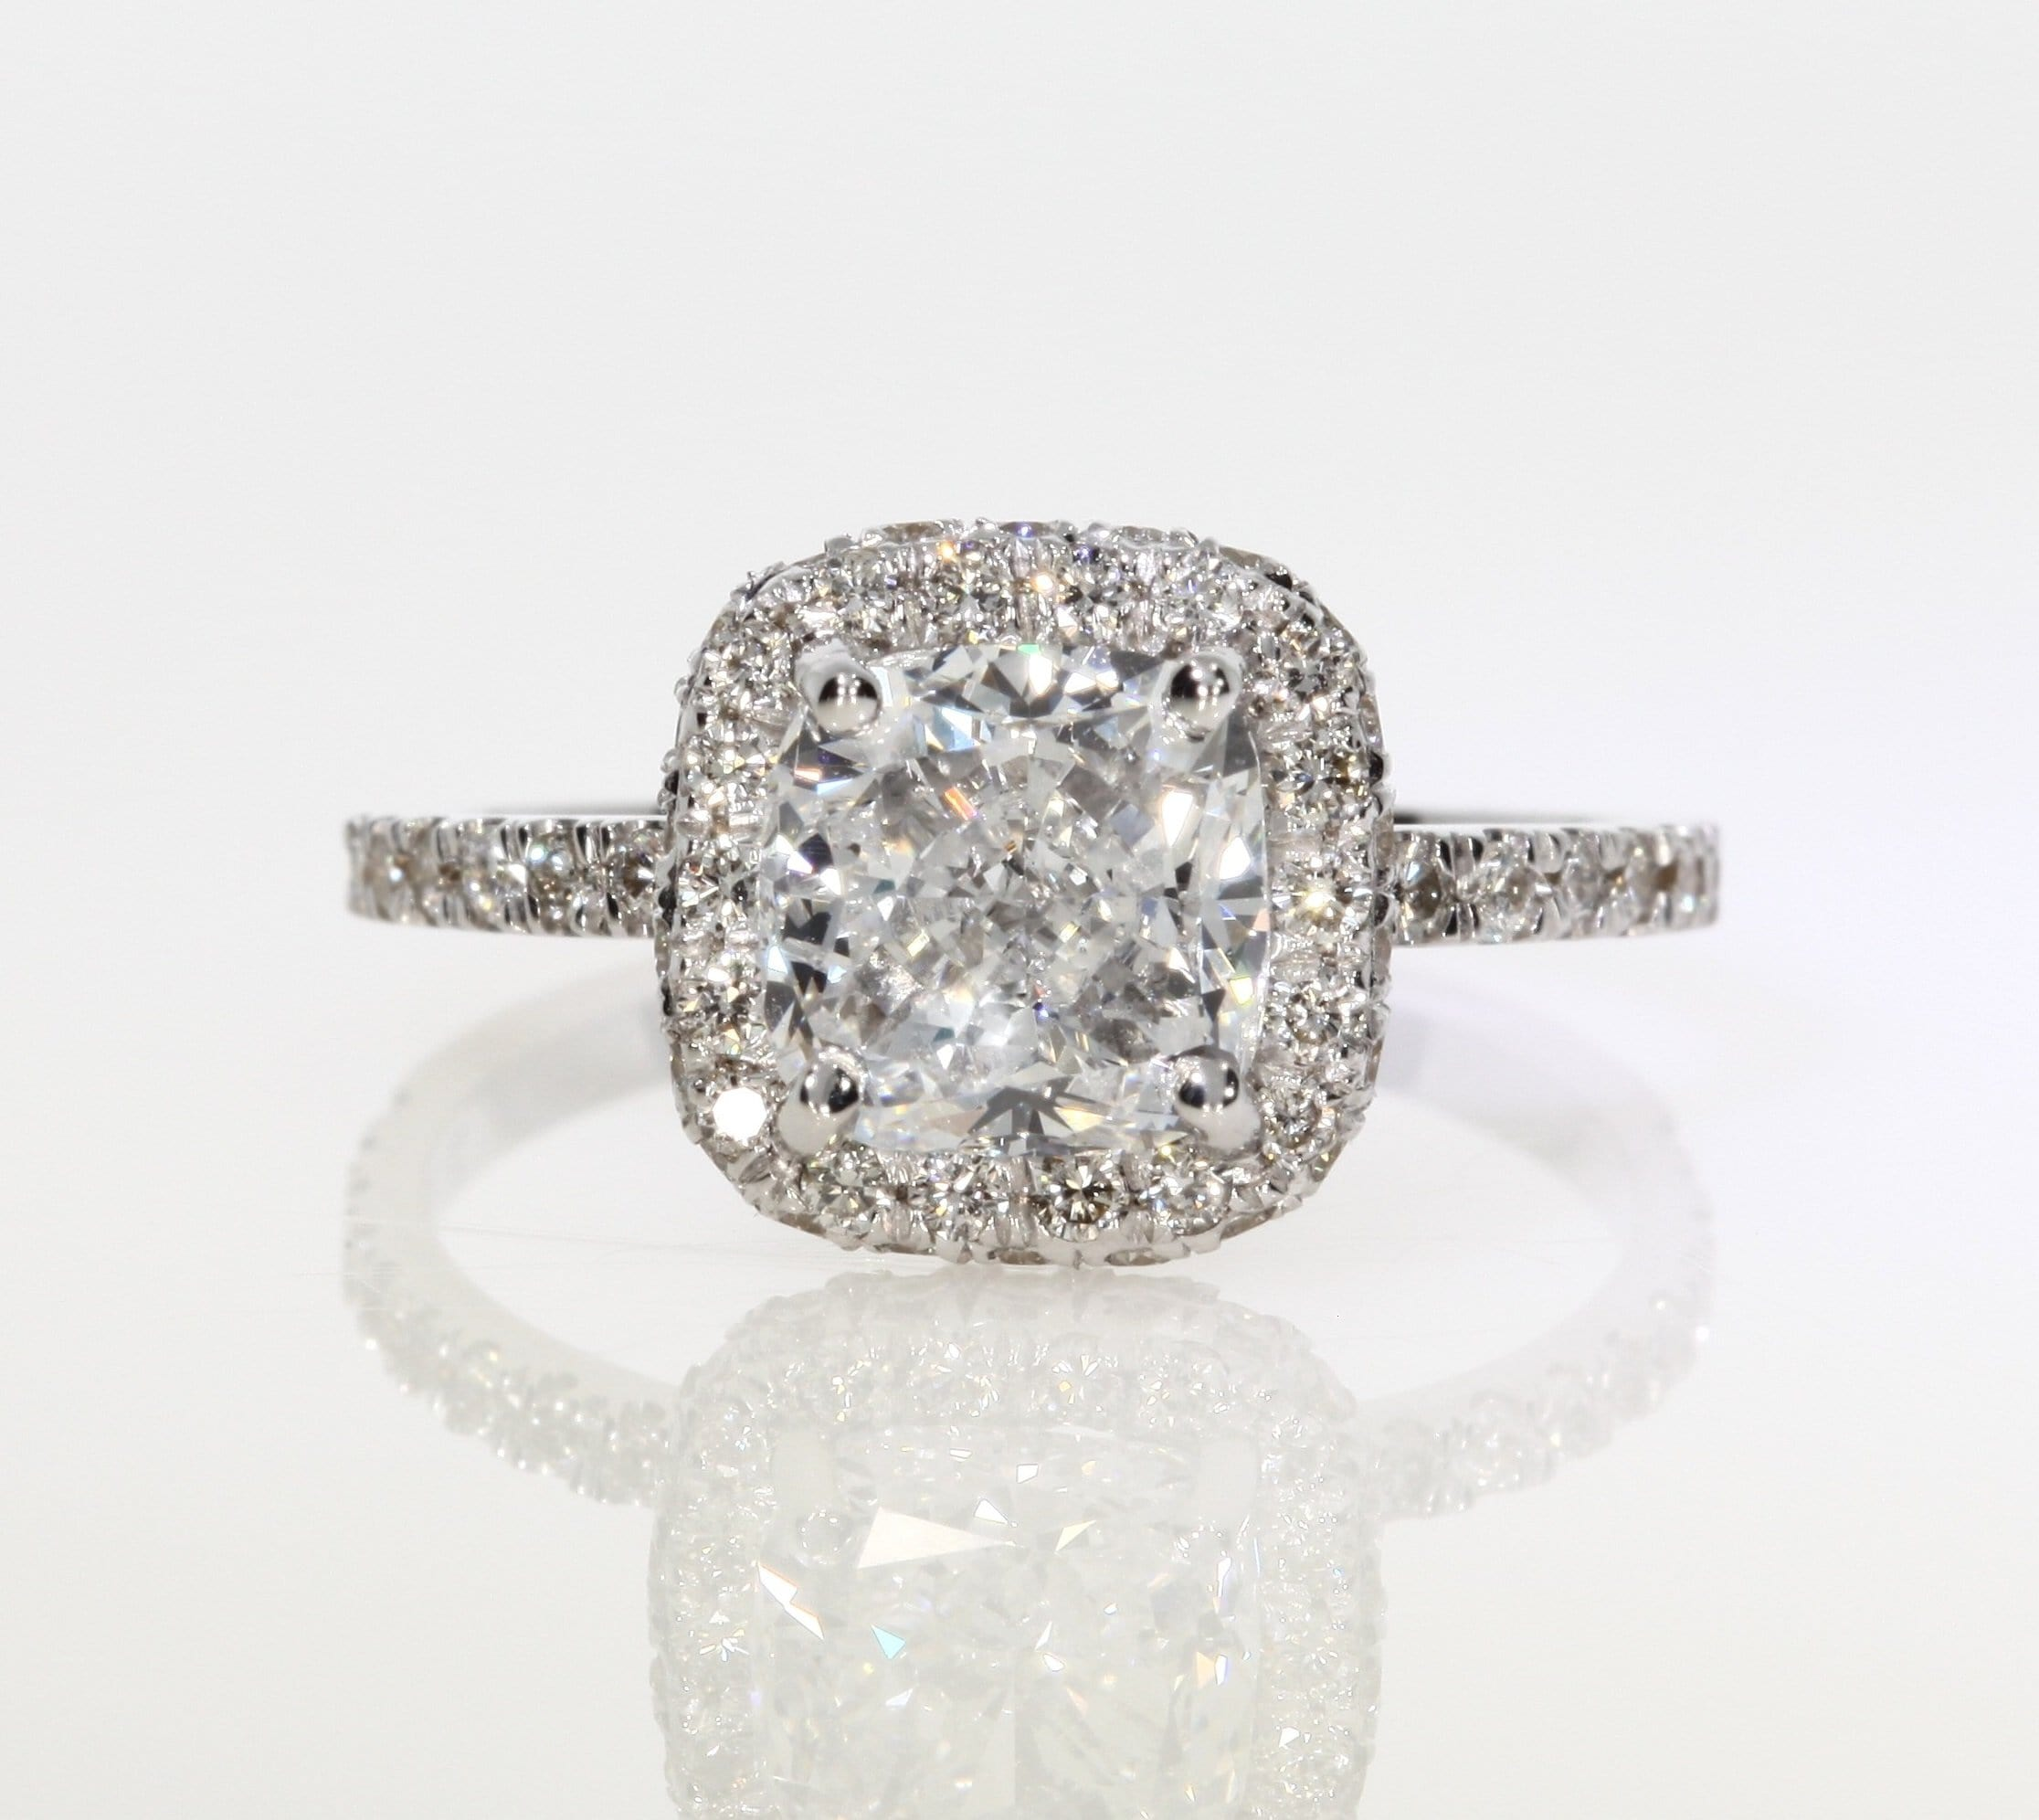 3.03 ct Cushion Cut Diamond Engagement Ring